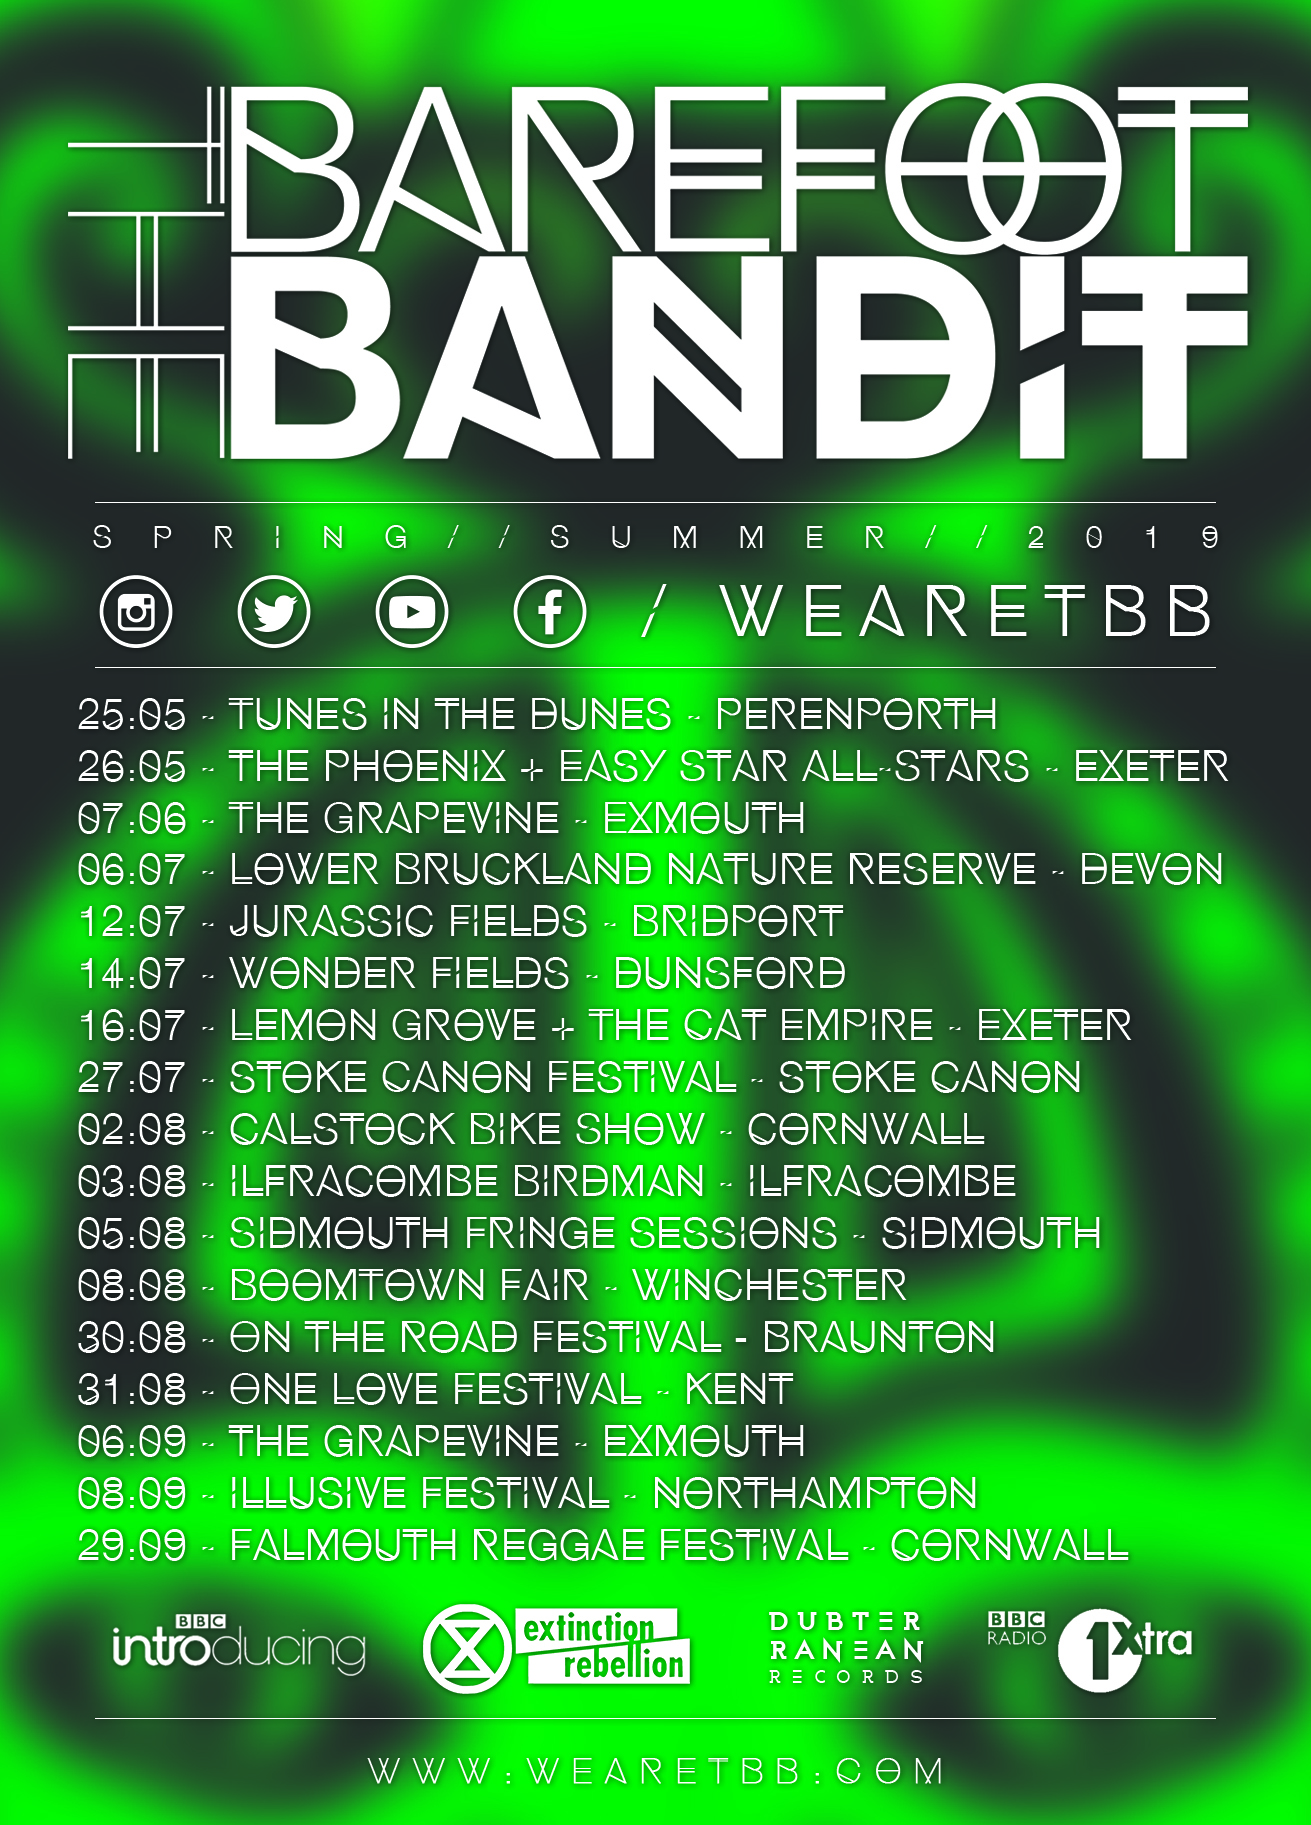 Check out our Spring/Summer Tour dates and come along to a show soon!